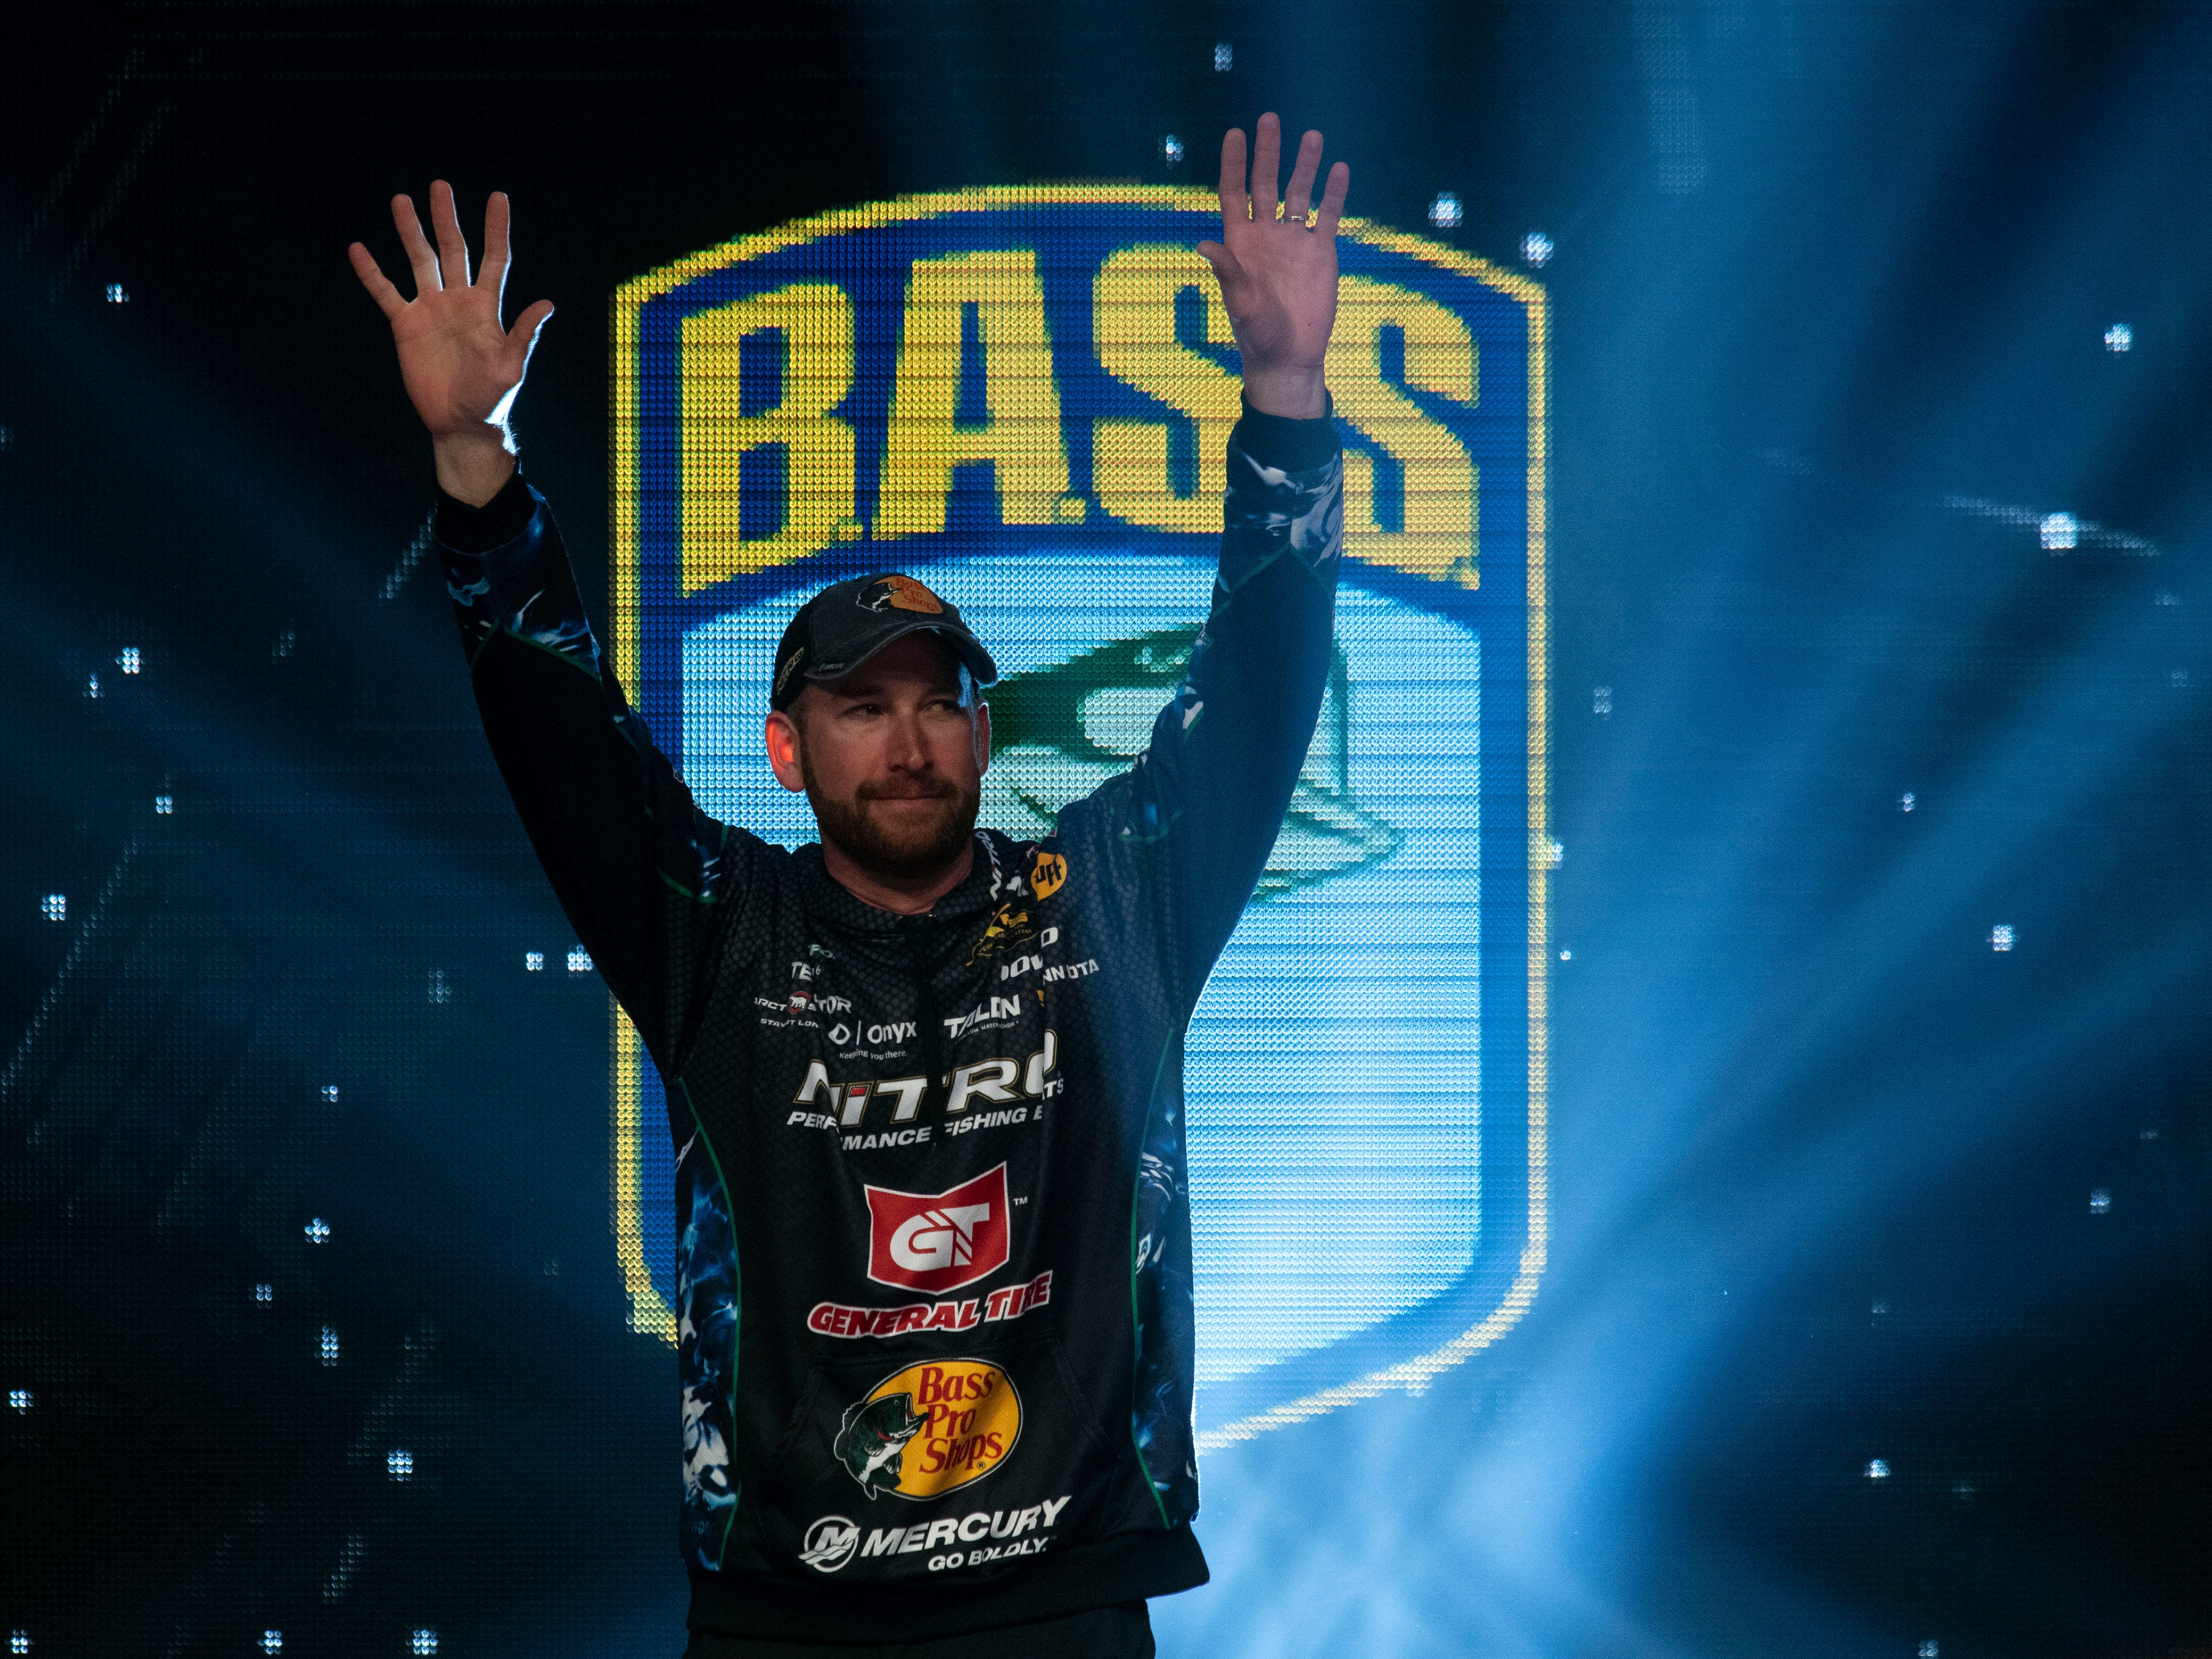 Ott DeFoe waves as he is introduced to the crowd in the final weigh-in of the Bassmaster Classic at Thompson-Boling Arena on Sunday, March 17, 2019.